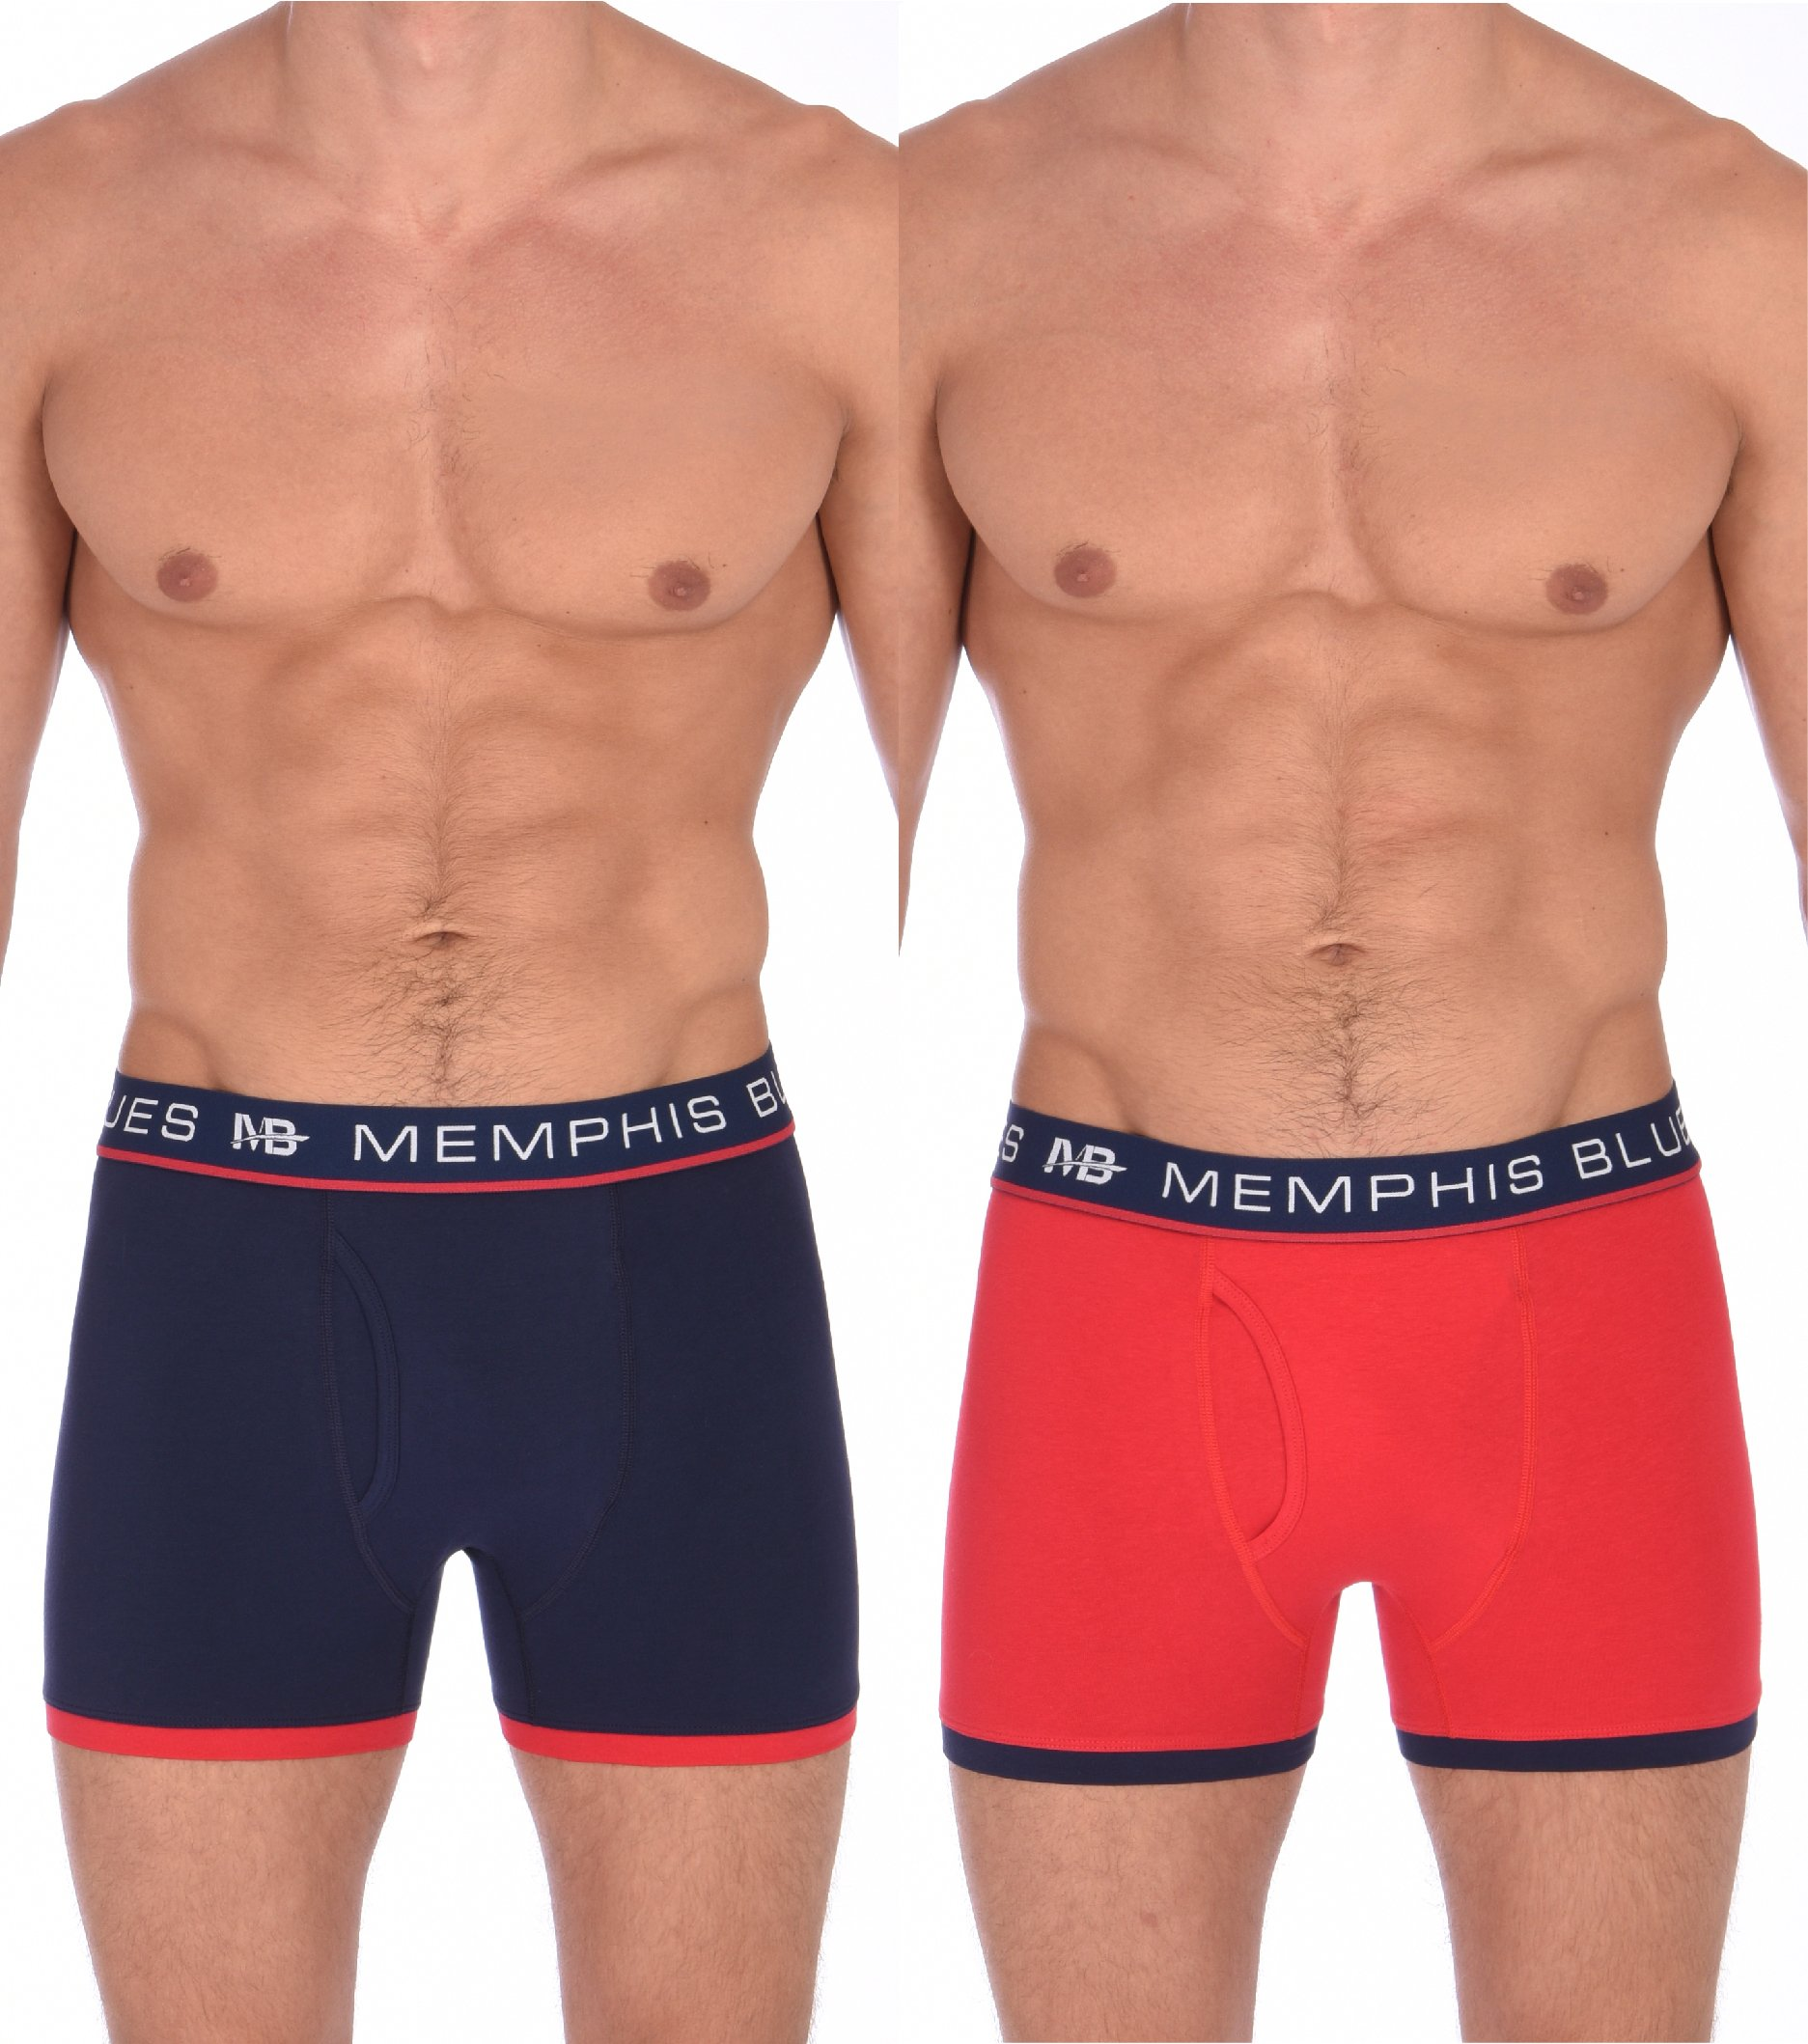 MEMPHIS BLUES Boxer Briefs for Men in Peacoat and Red